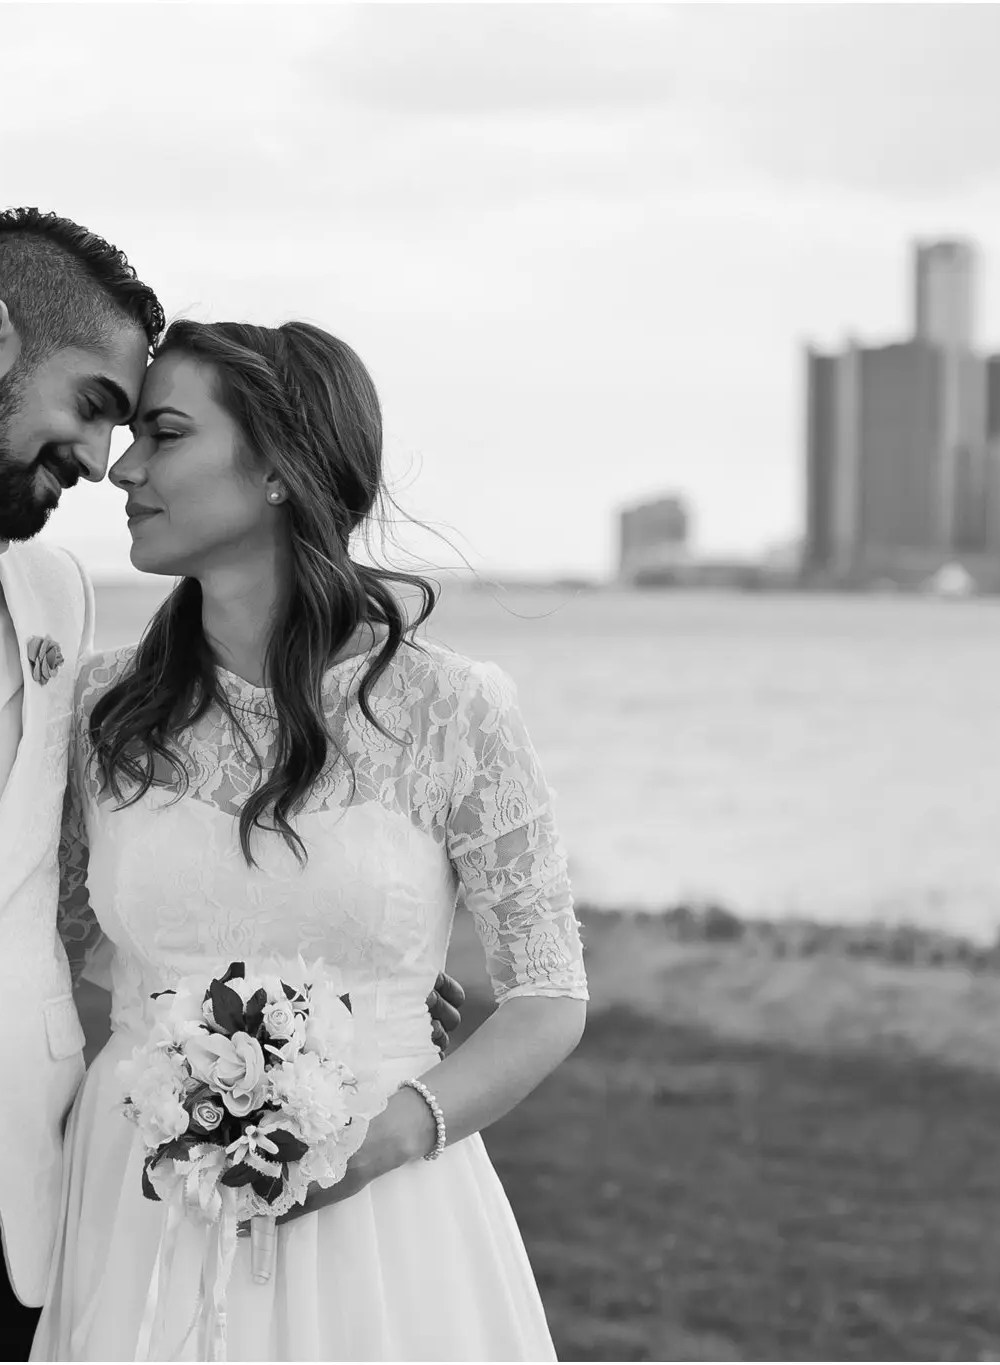 Kaitlyn + Abe = MARRIED! St. Clair Shores Wedding